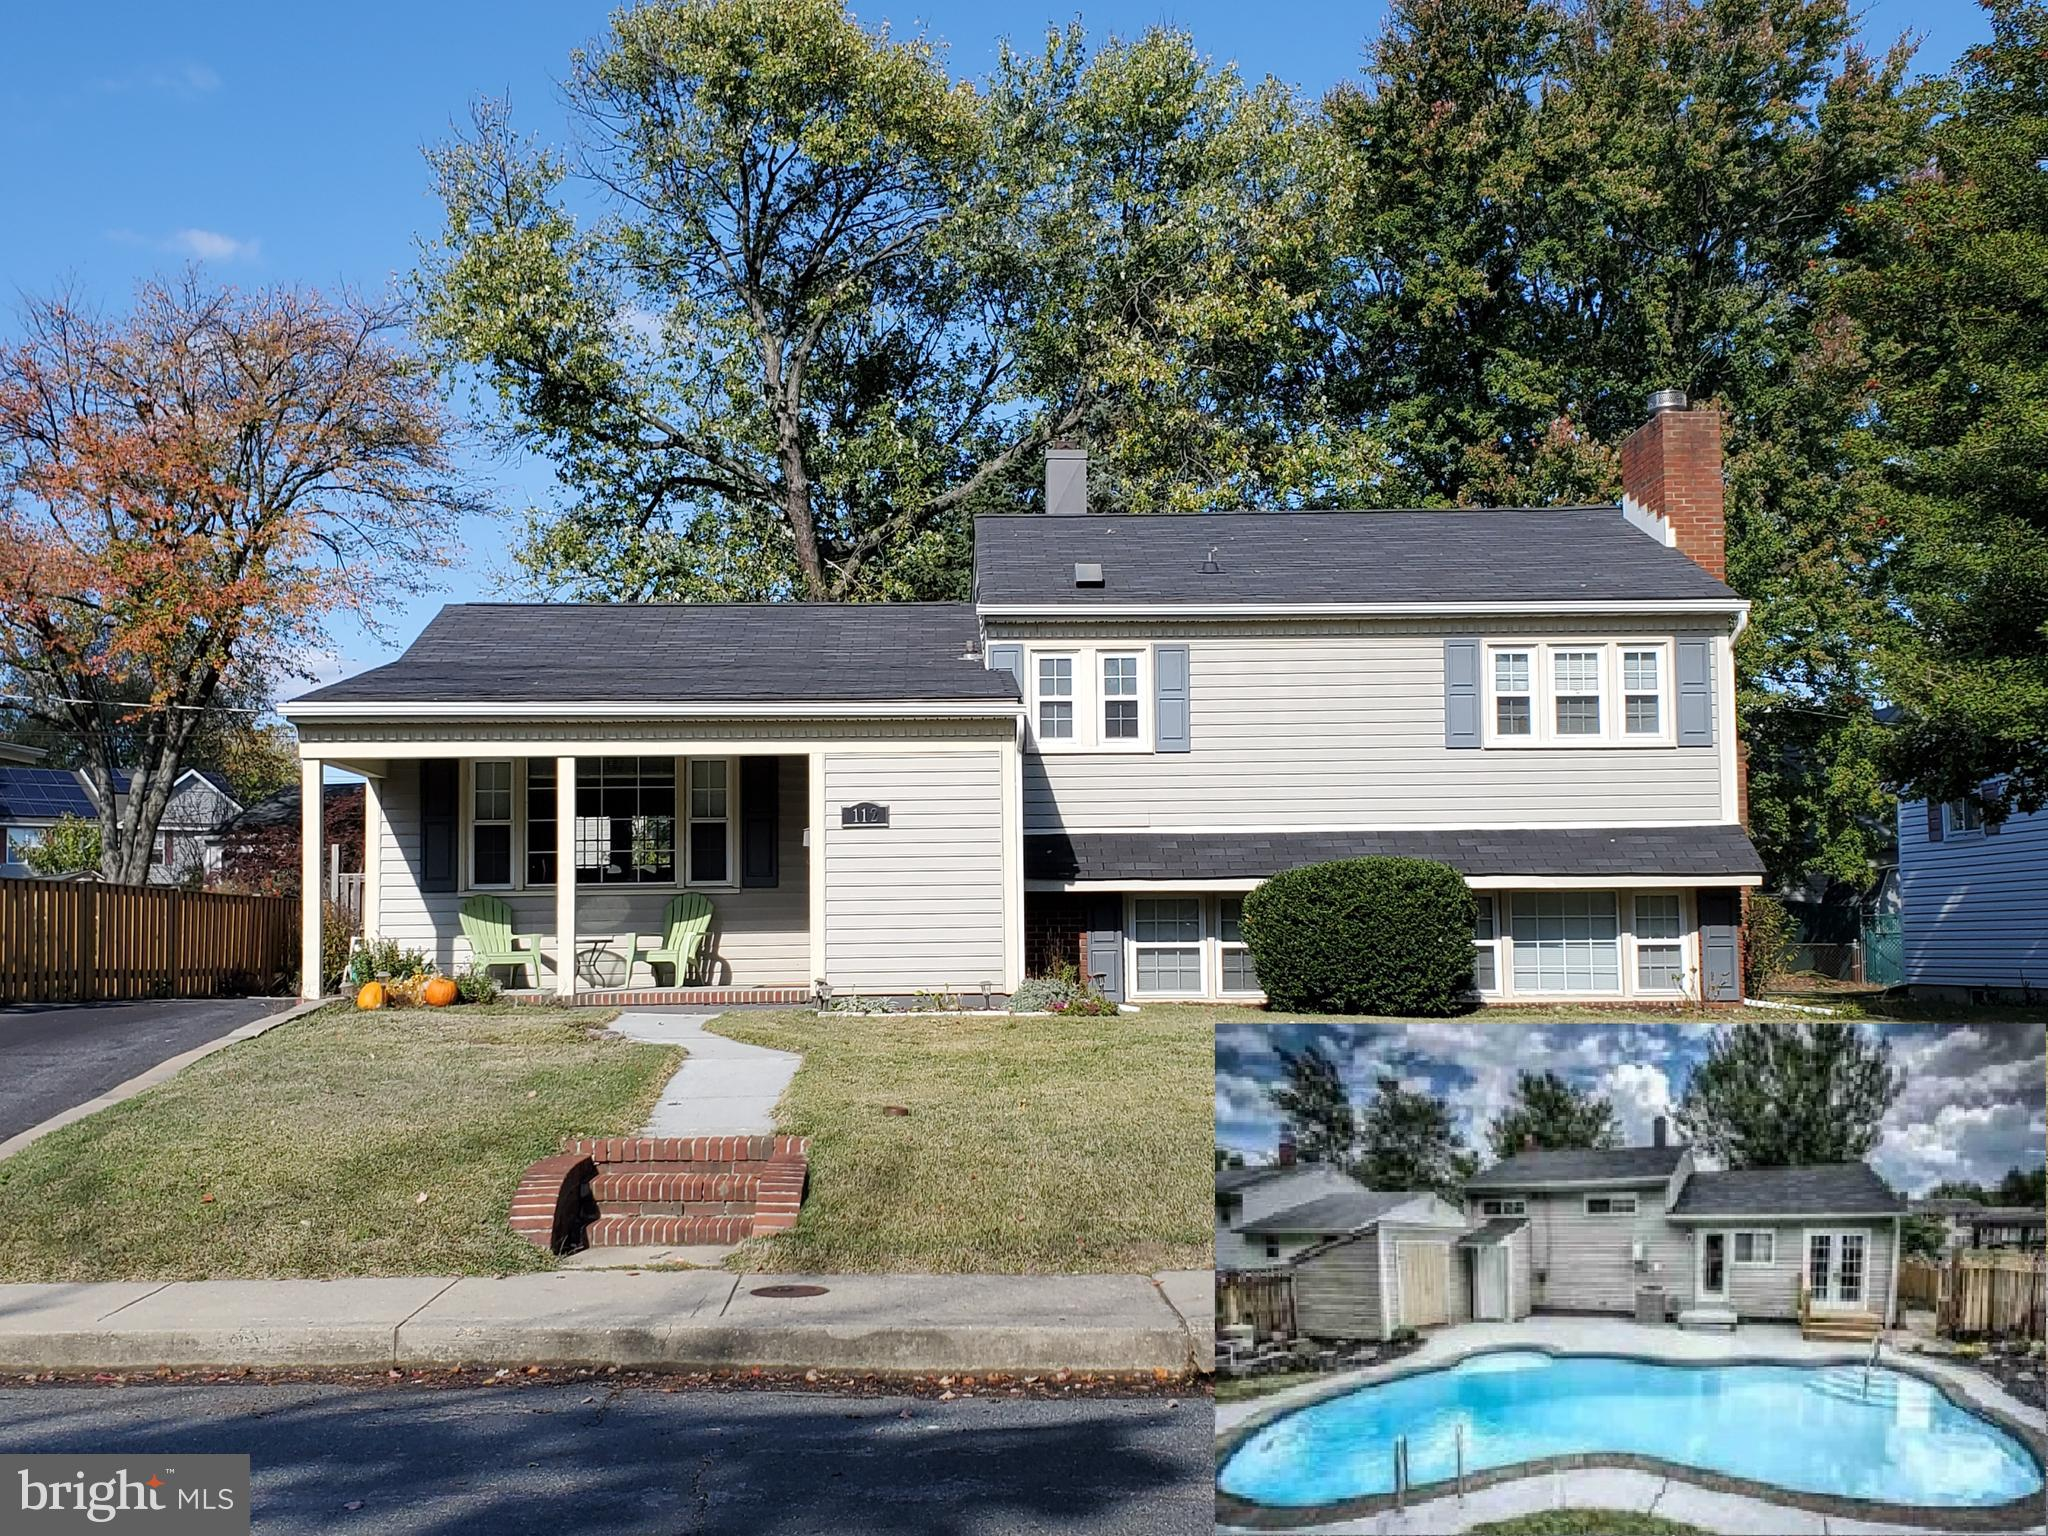 Beautifully Updated w/Open Floor plan! Built in Pool w/Newer Cover and Pool Motor, Hardwood Floors L